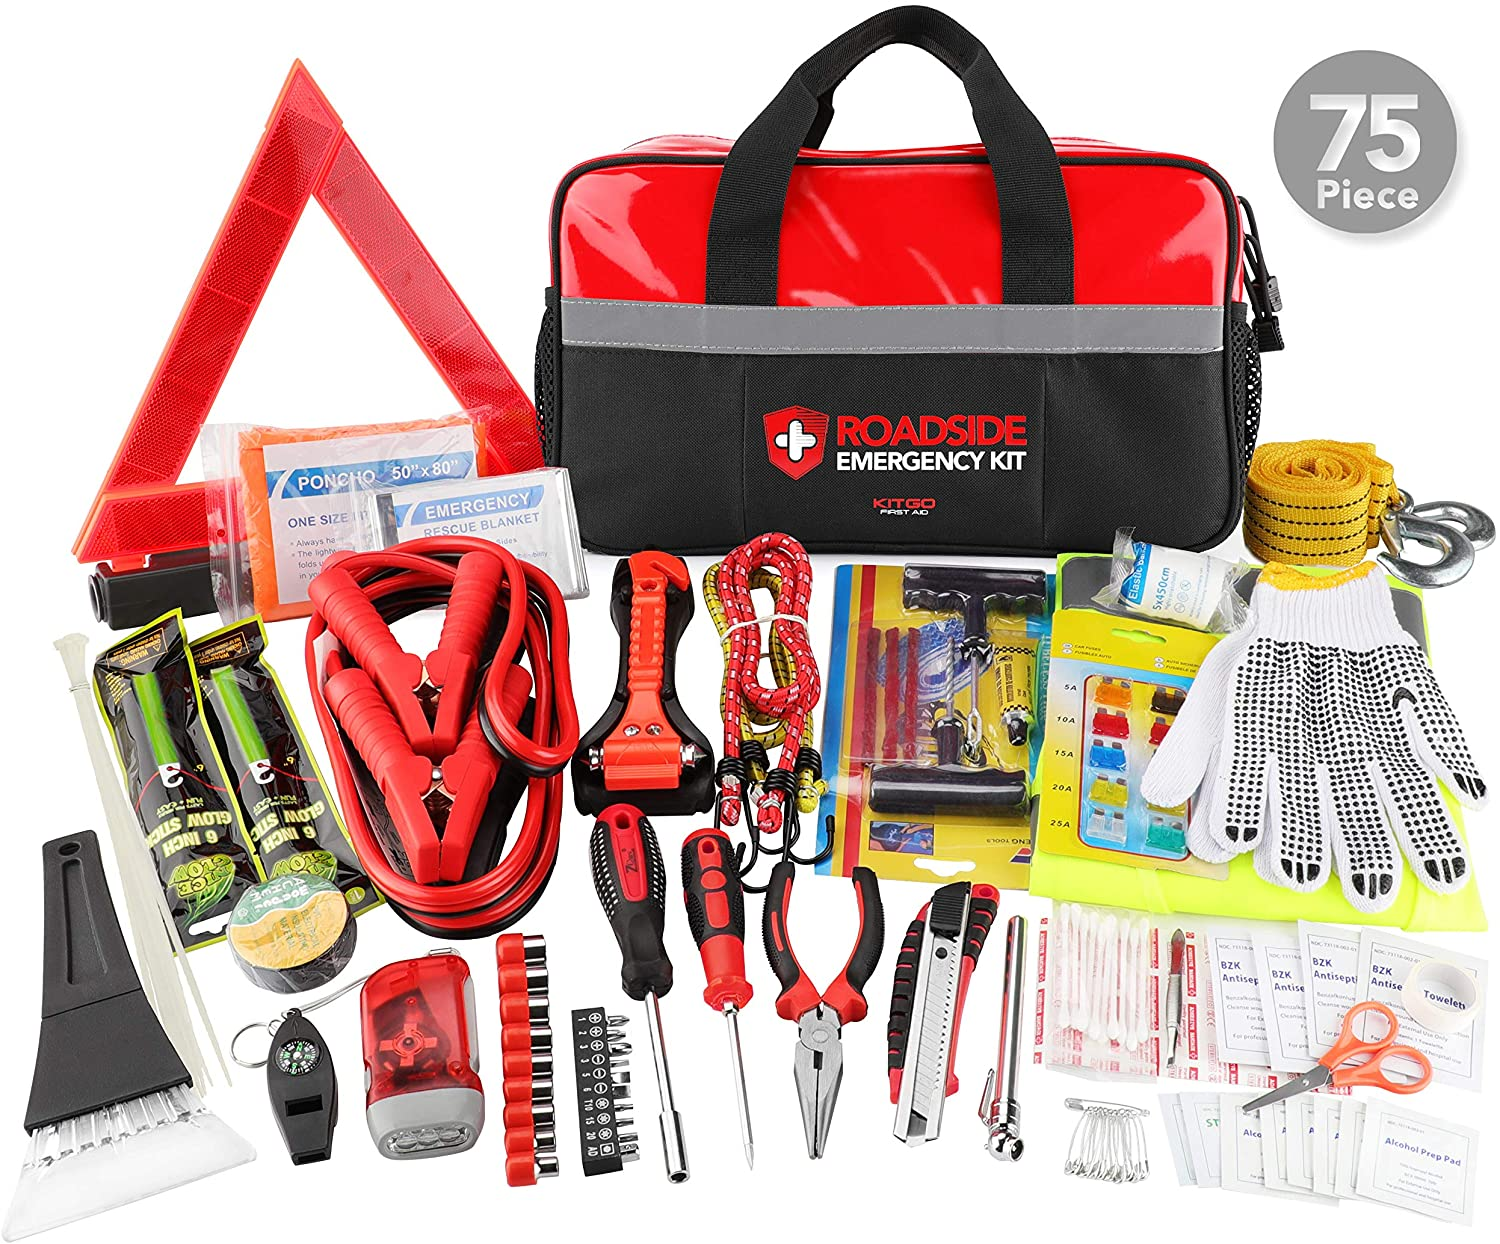 Kitgo Car Emergency Kit, Premium Roadside Assistance Essentials with Jumper Cables, Flashlight, Shovel, Screwdriver Set - Ideal Auto Road Safety Kit for Winter, Survival, Truck, RV and More (Red)